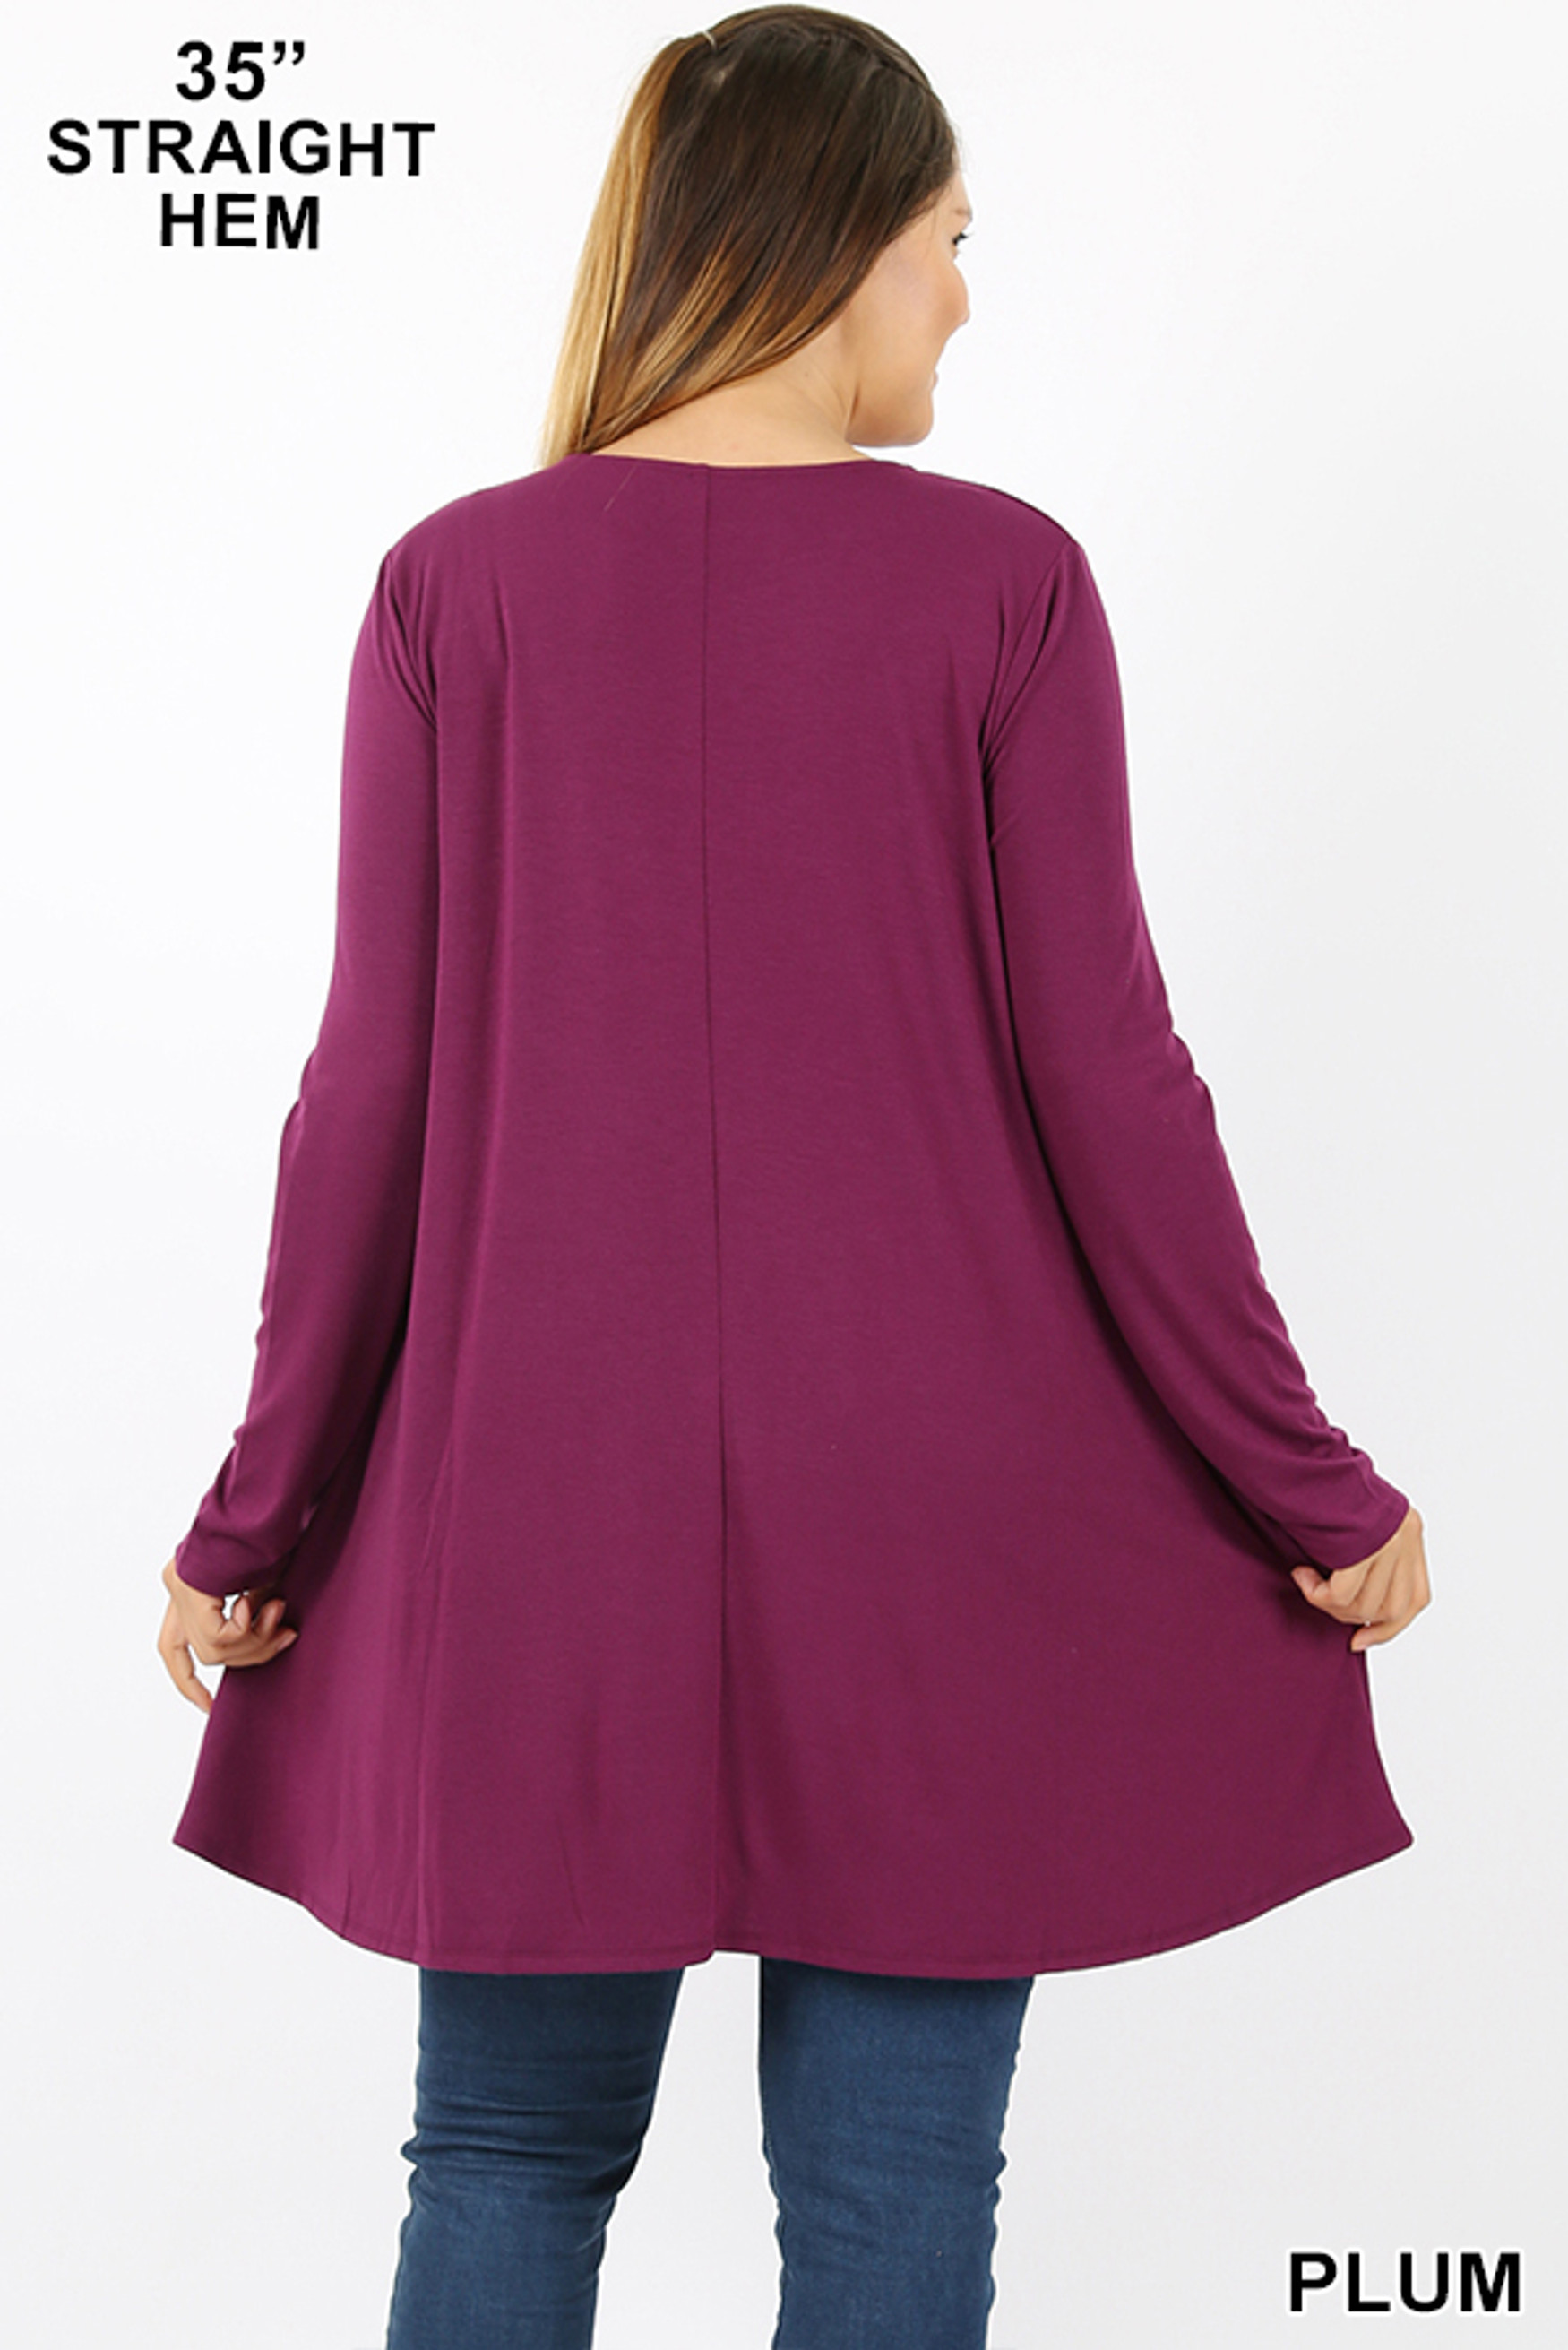 Back view of Plum Long Sleeve Plus Size Swing Tunic with Pockets